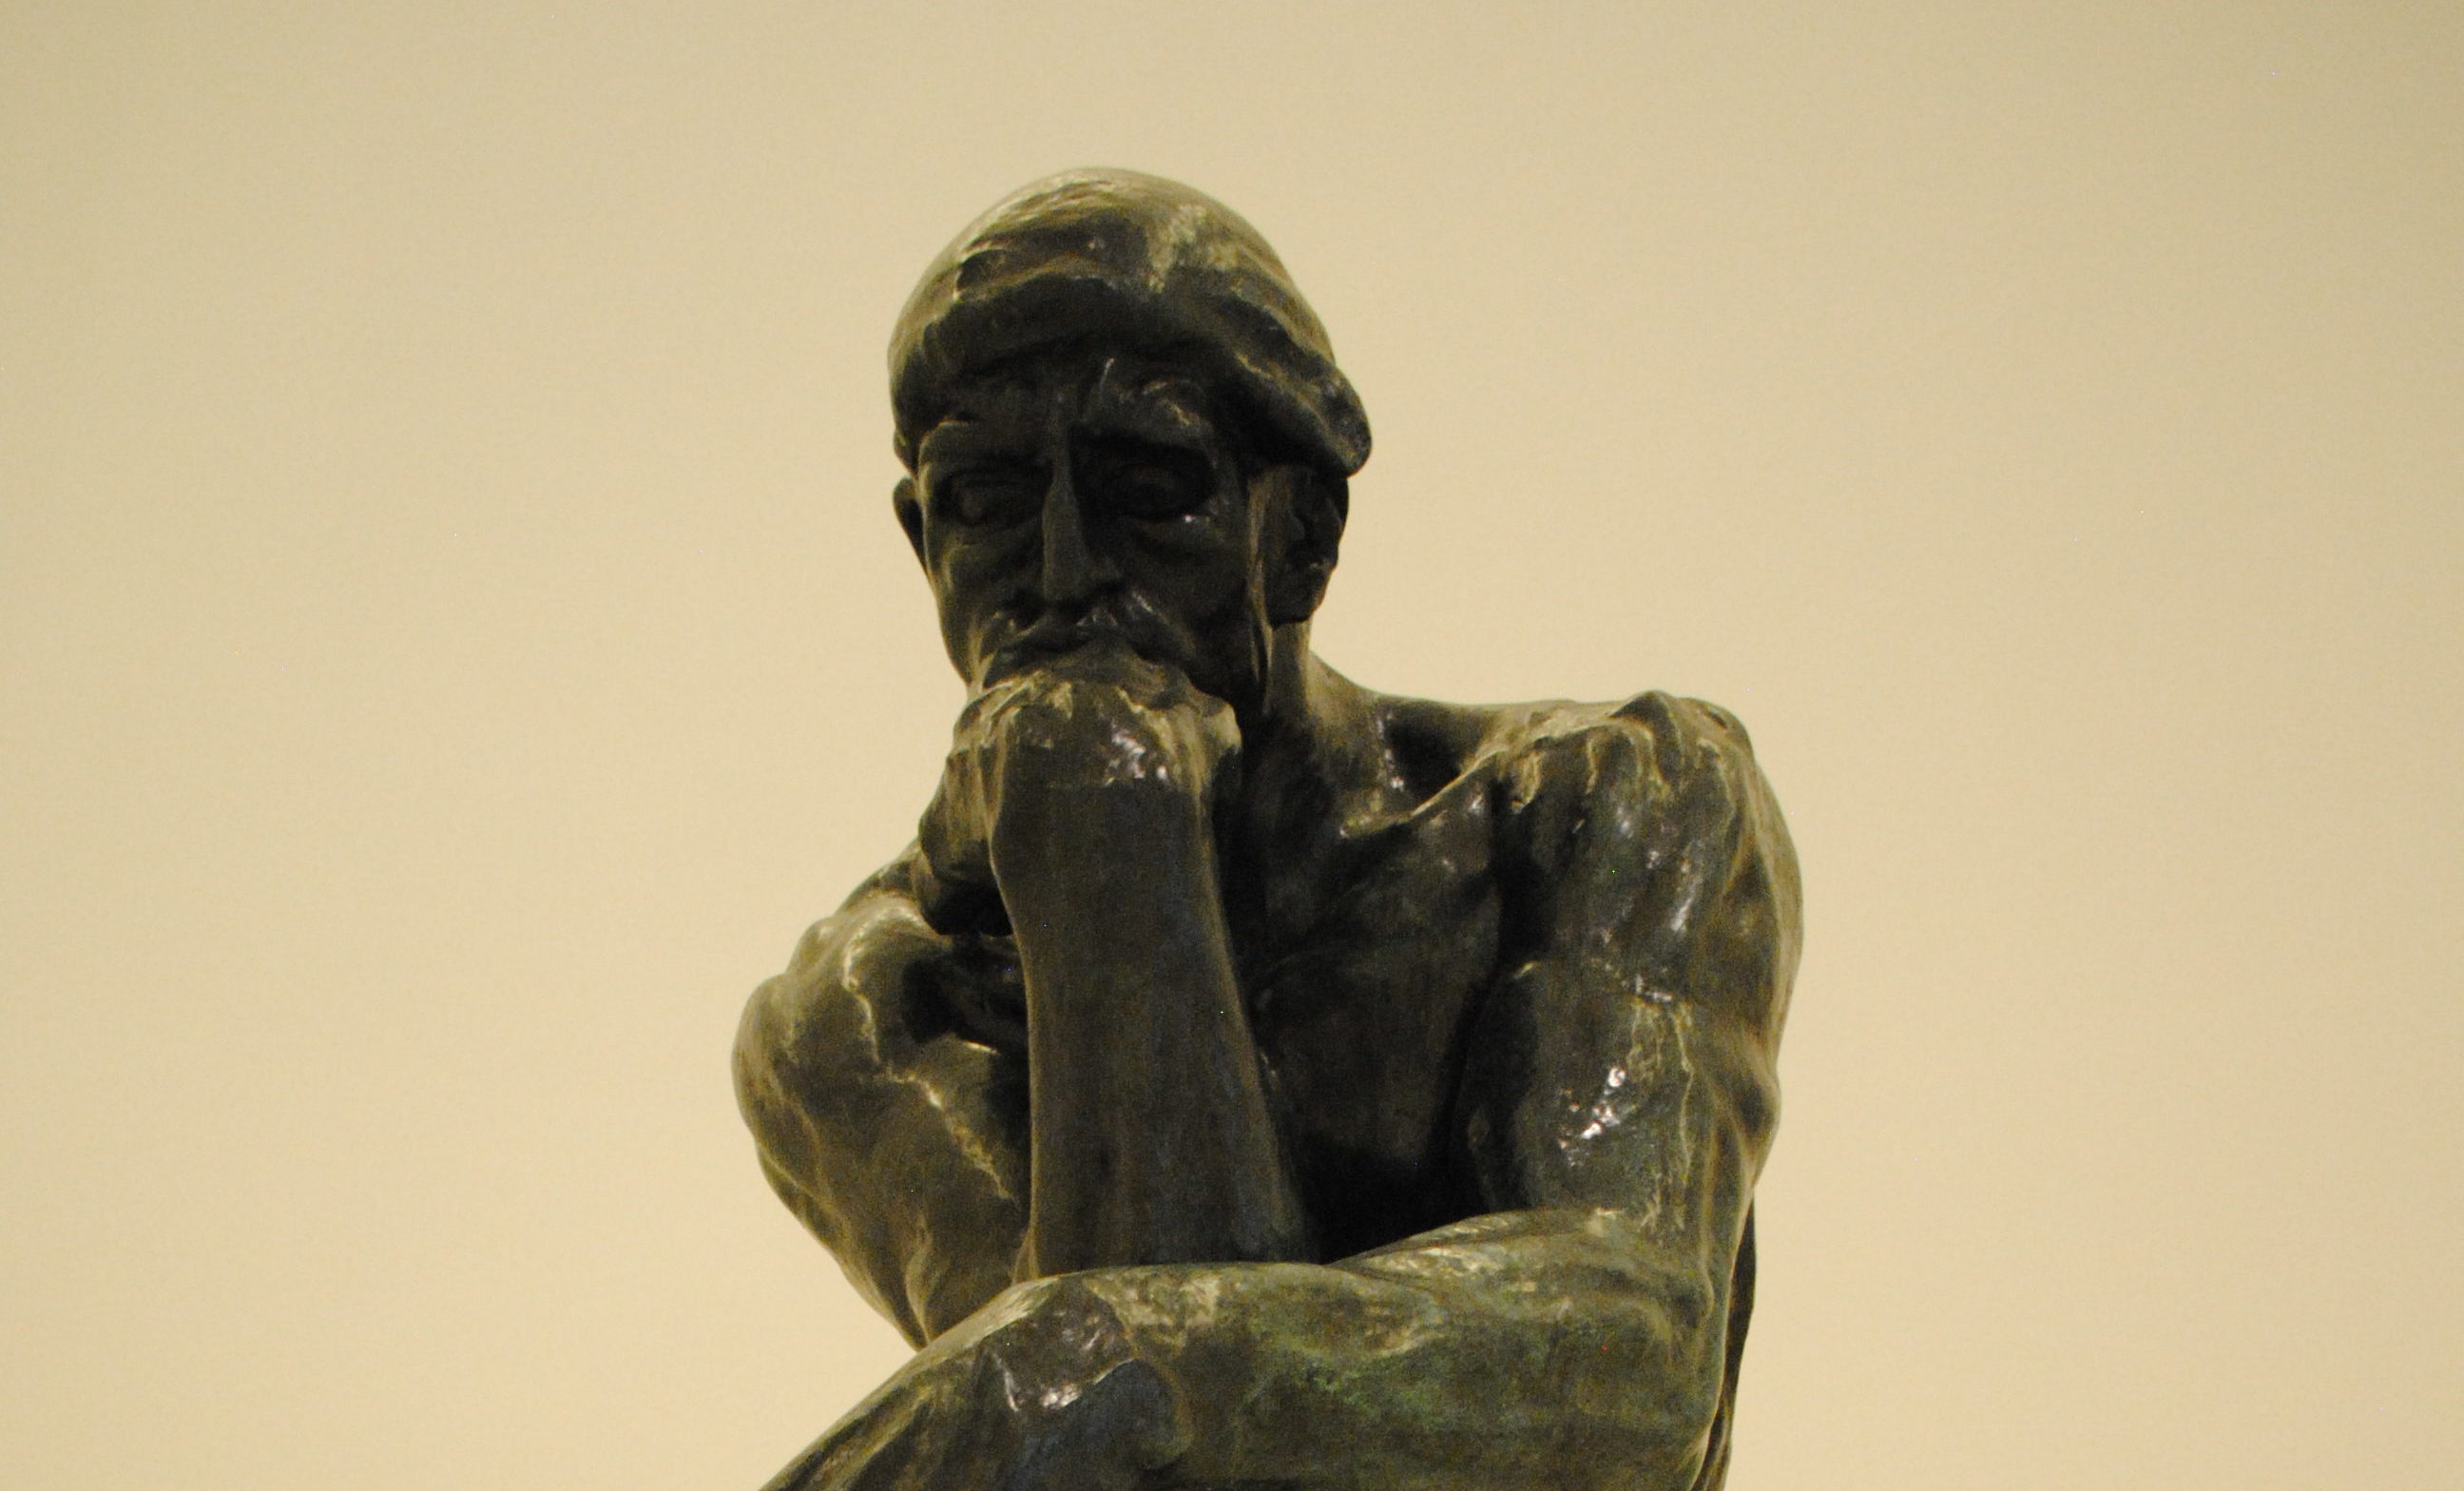 By Auguste Rodin - Photography at the Soumaya Museum, taken by ProtoplasmaKid, Public Domain, https://commons.wikimedia.org/w/index.php?curid=35132234